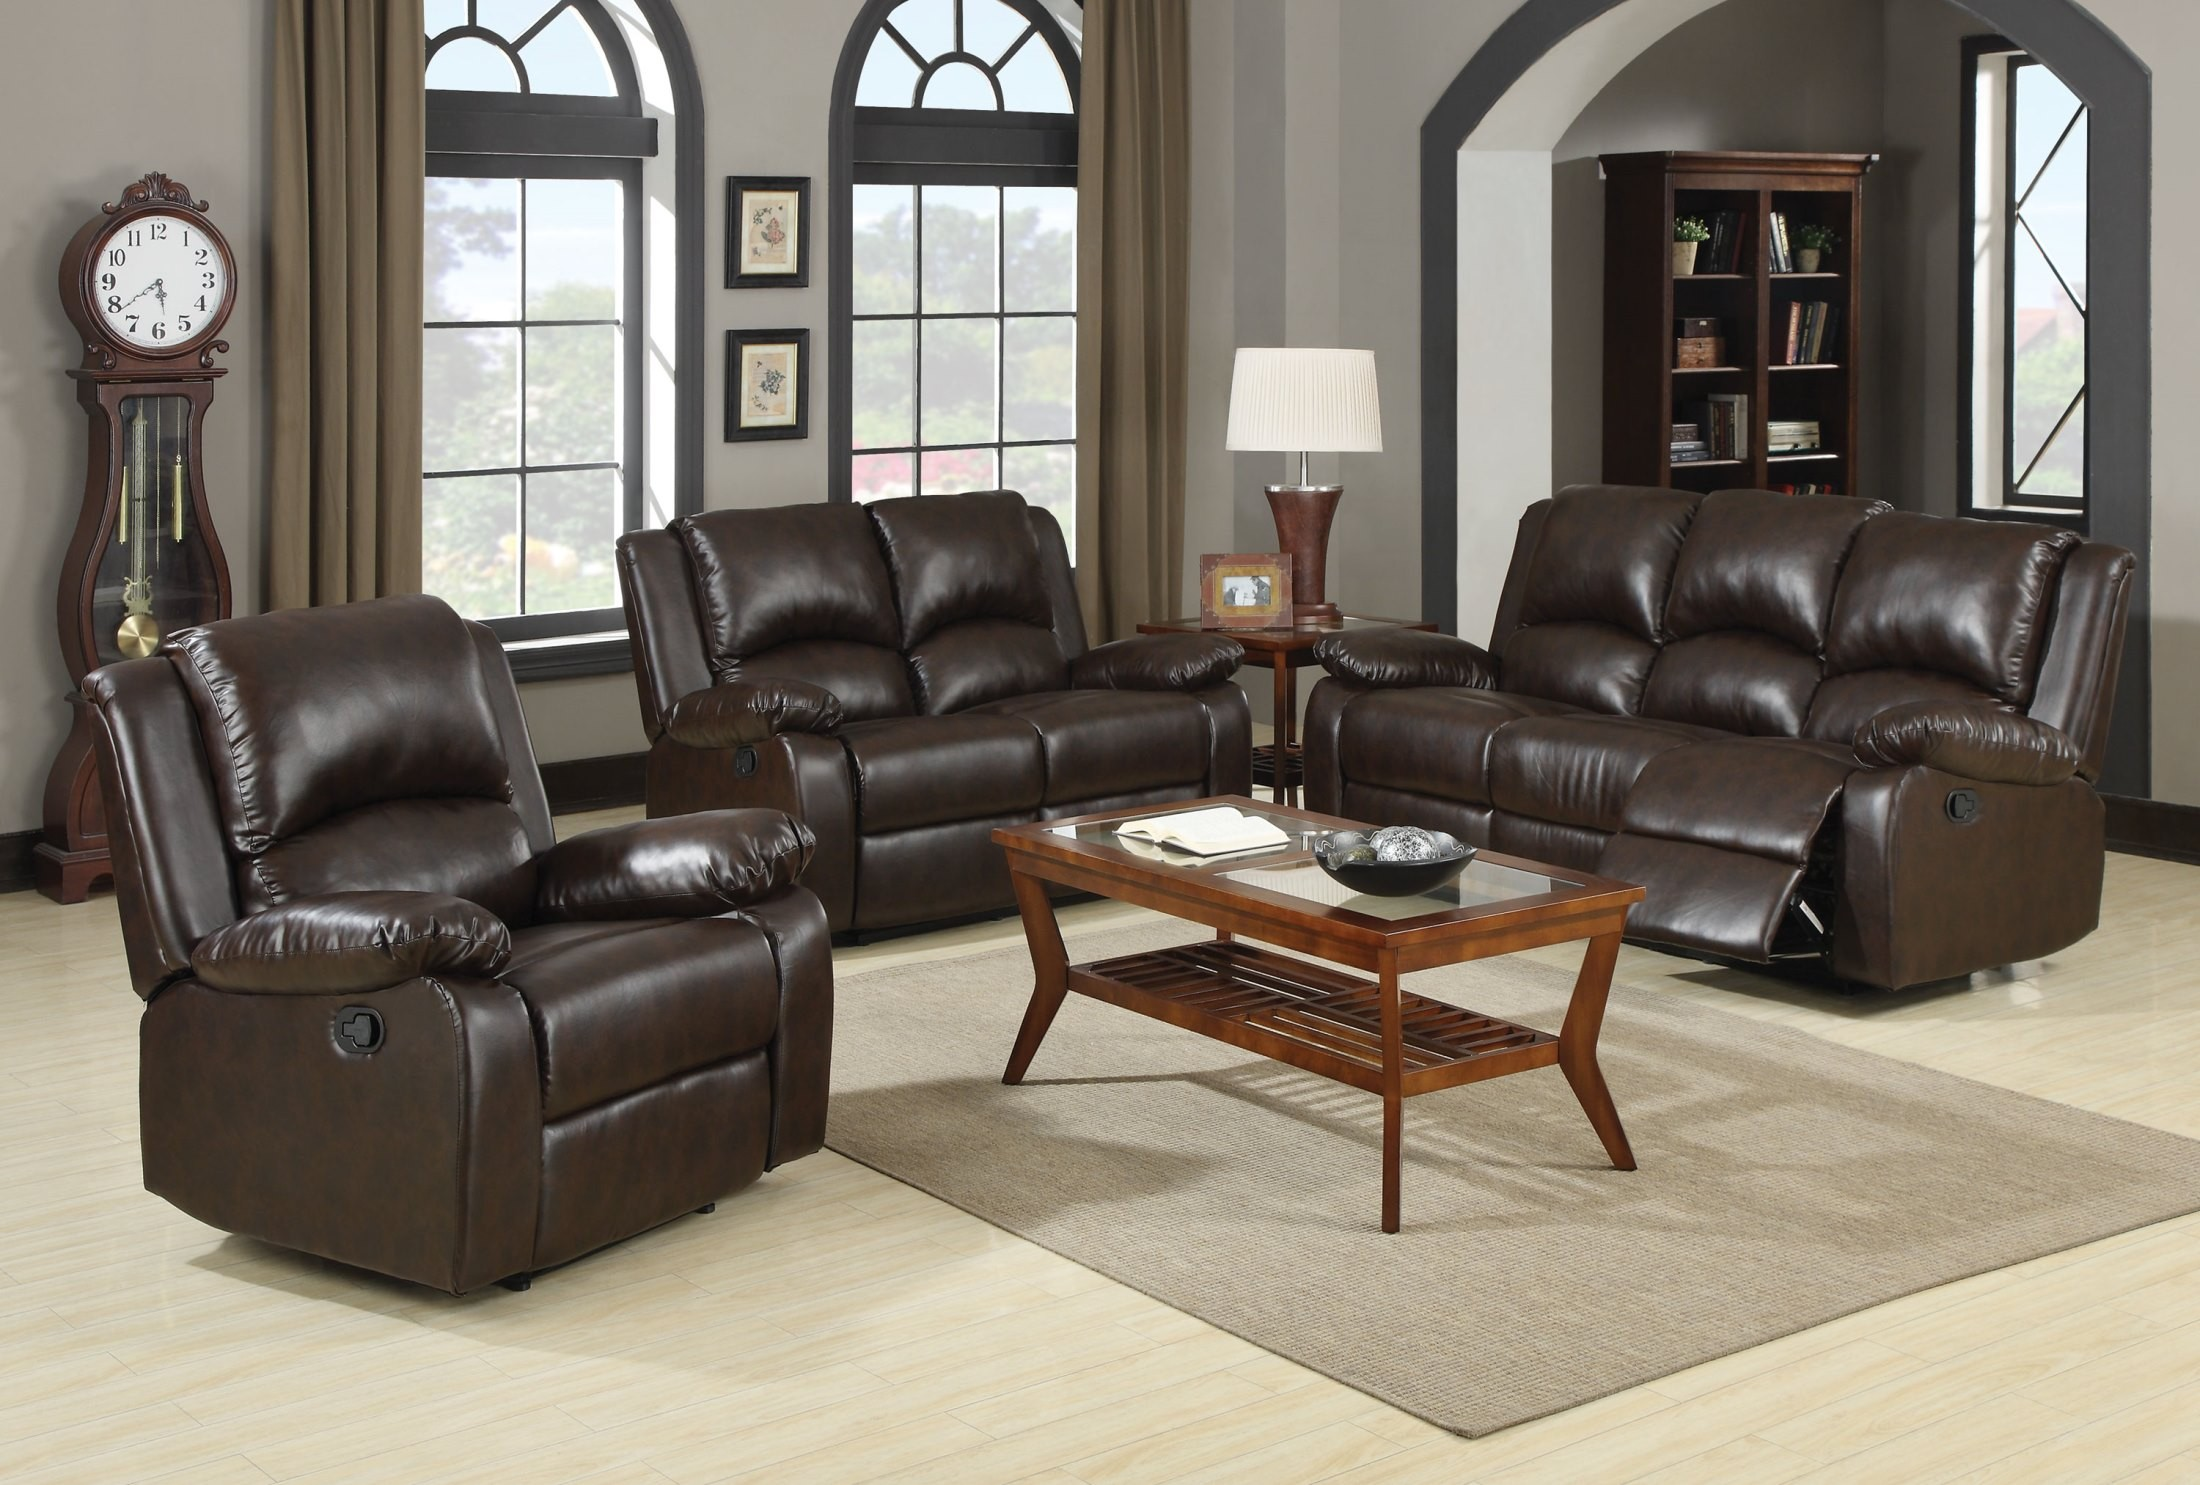 boston brown reclining living room set from coaster